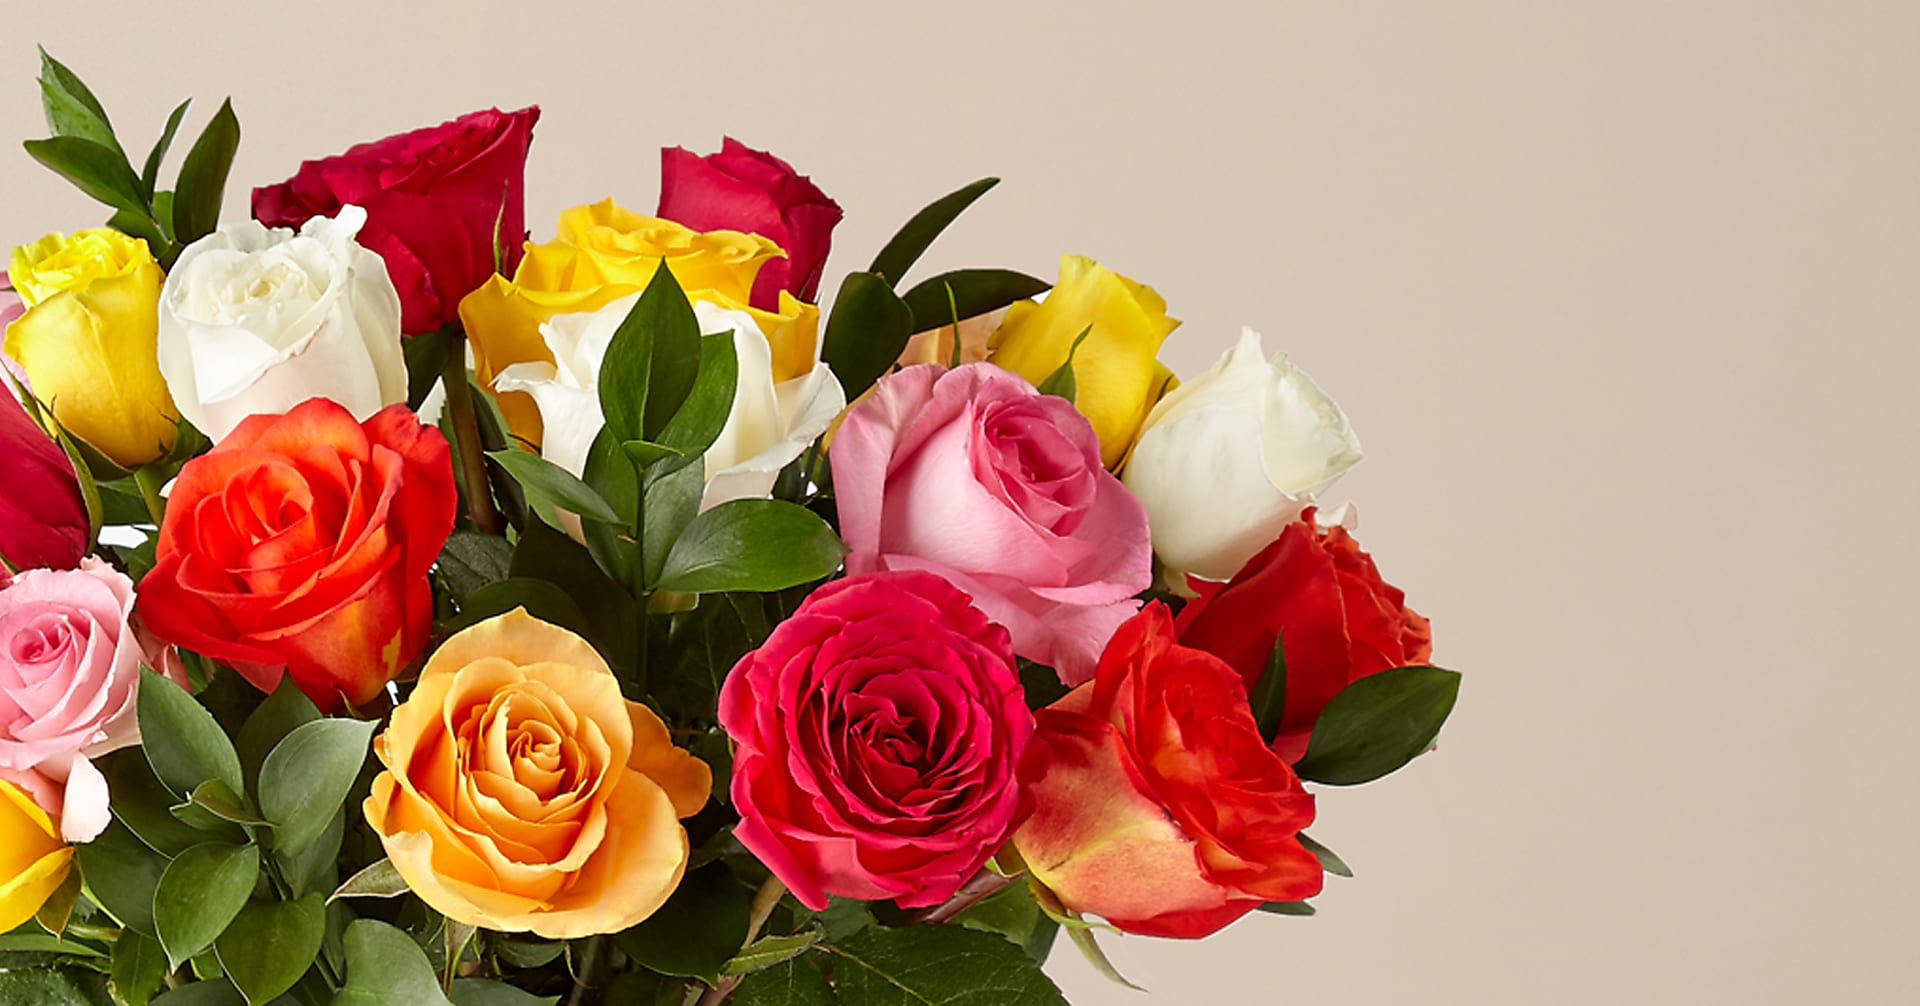 Mixed Roses with Vase - Image 4 Of 4